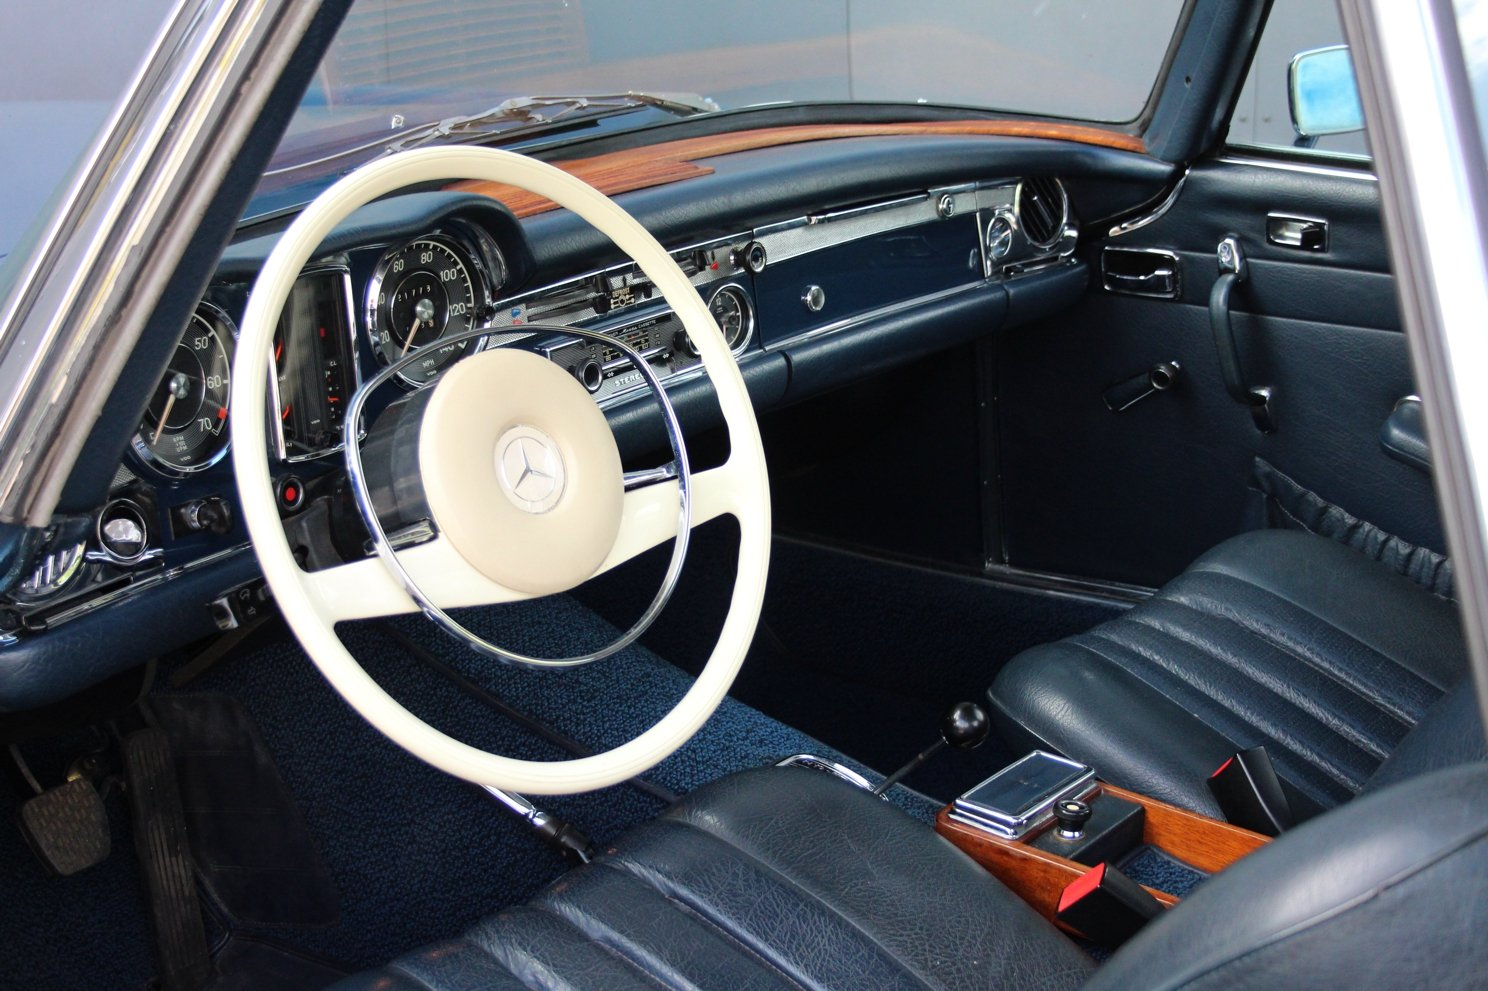 1963 Mercedes-Benz 280 SL Pagoda LHD (Automatic transmission) For Sale (picture 3 of 6)